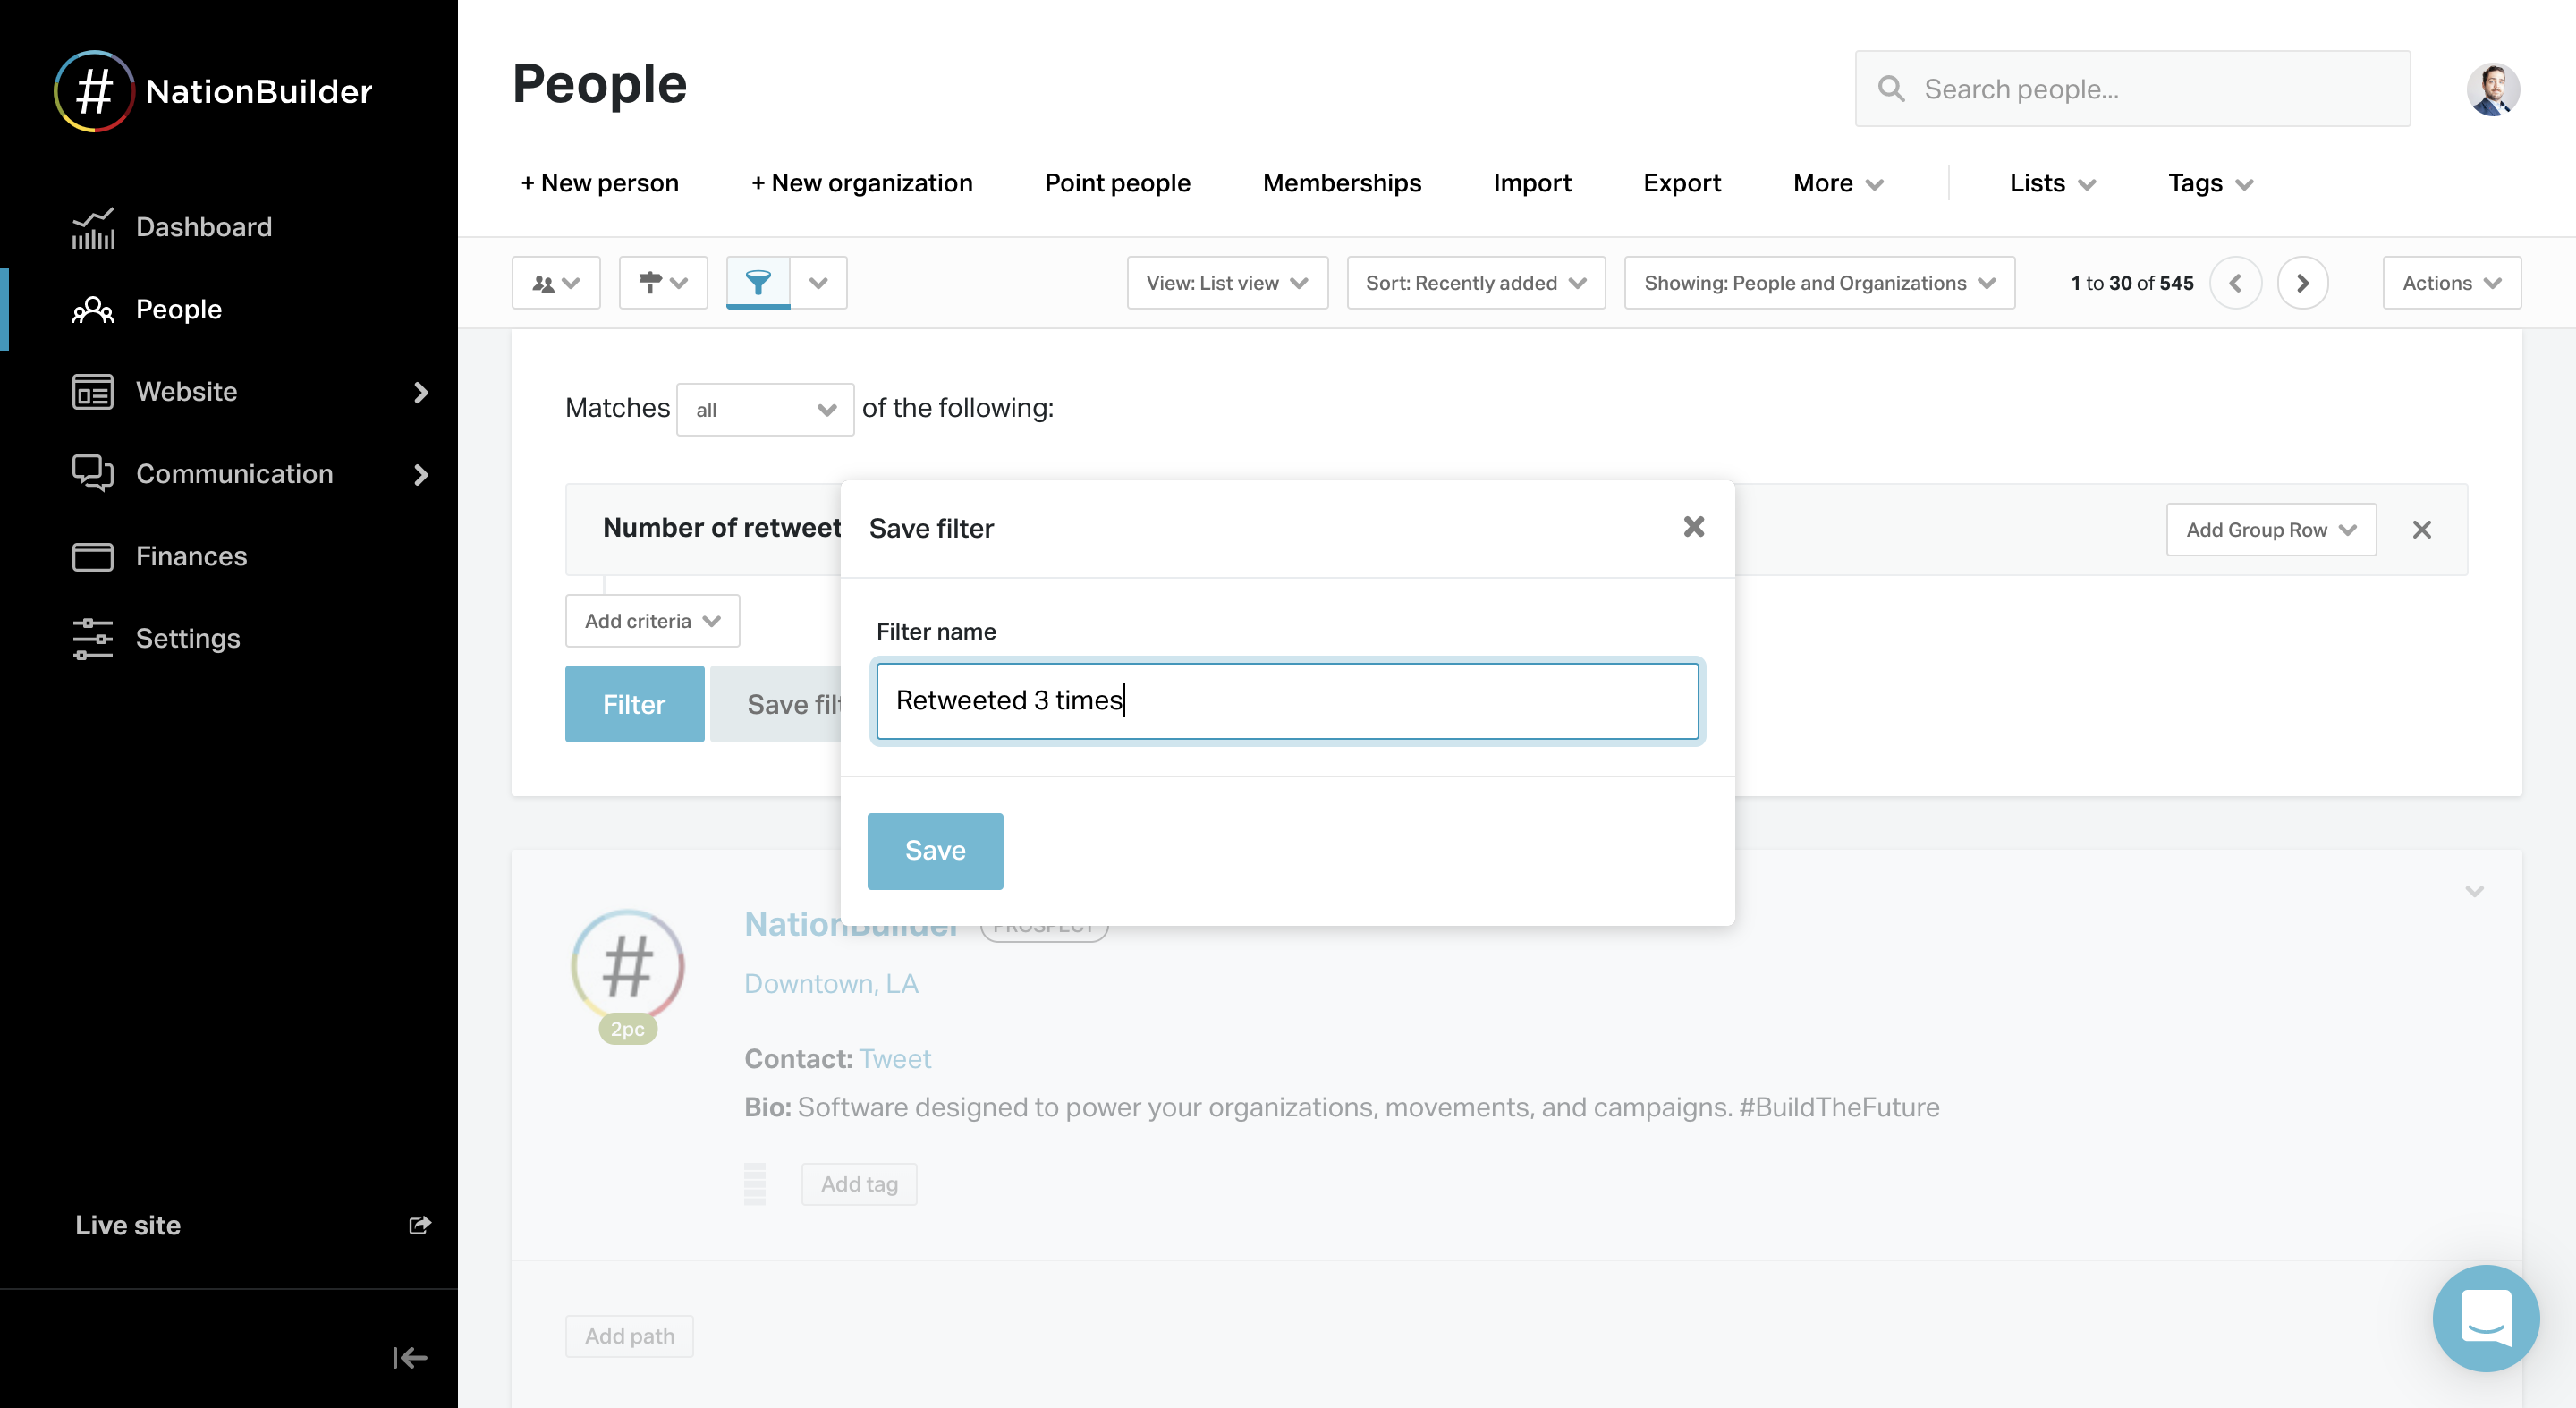 NationBuilder Backend setting up MyActionCenter actions